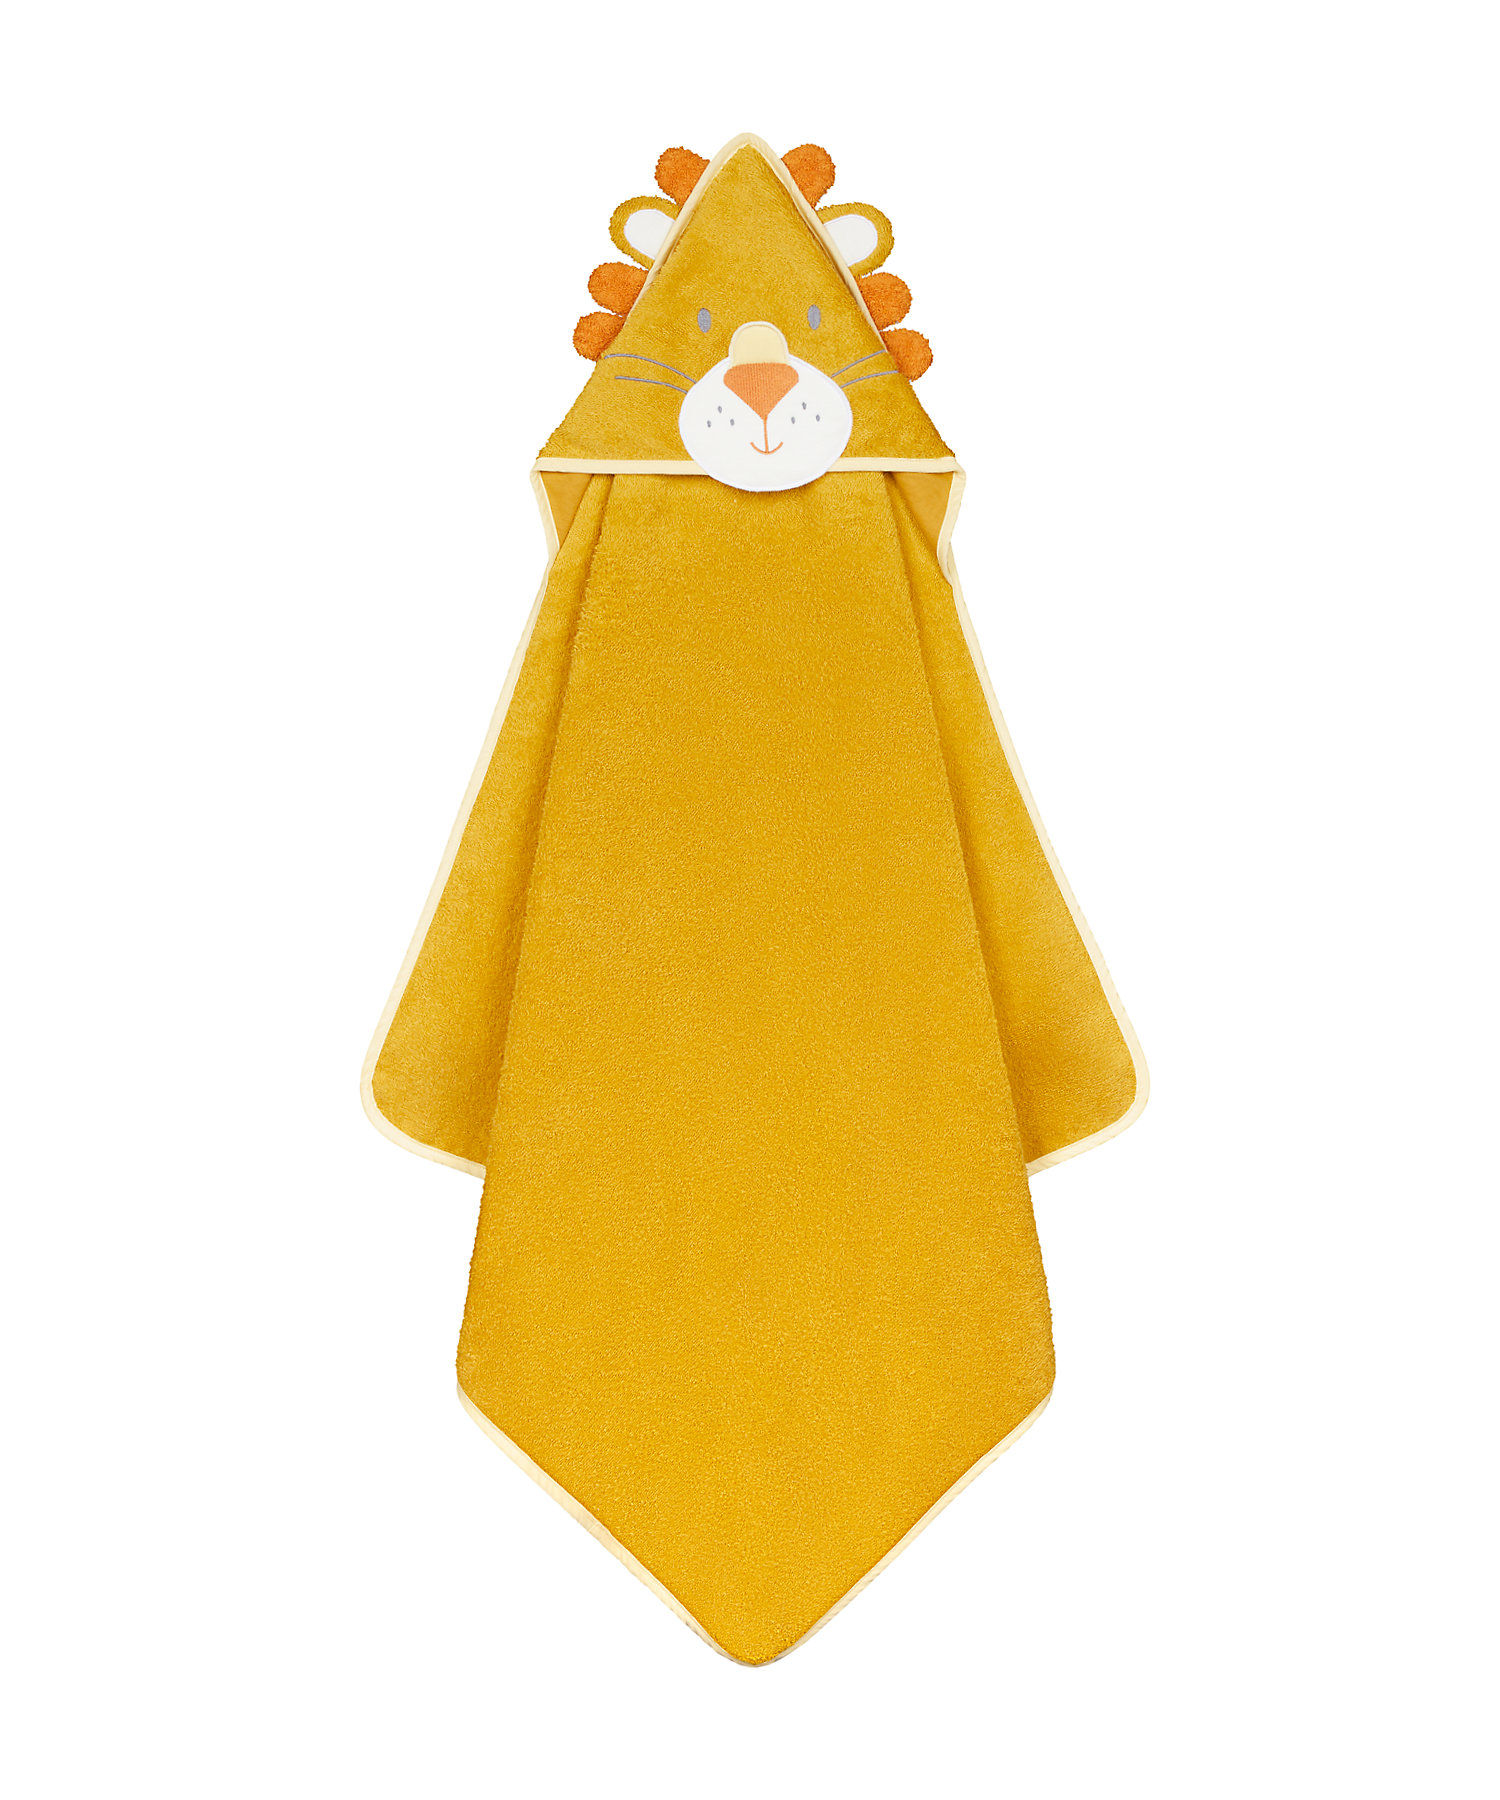 Mothercare   Mothercare Character Cuddle and Dry Baby Towels Lion Yellow